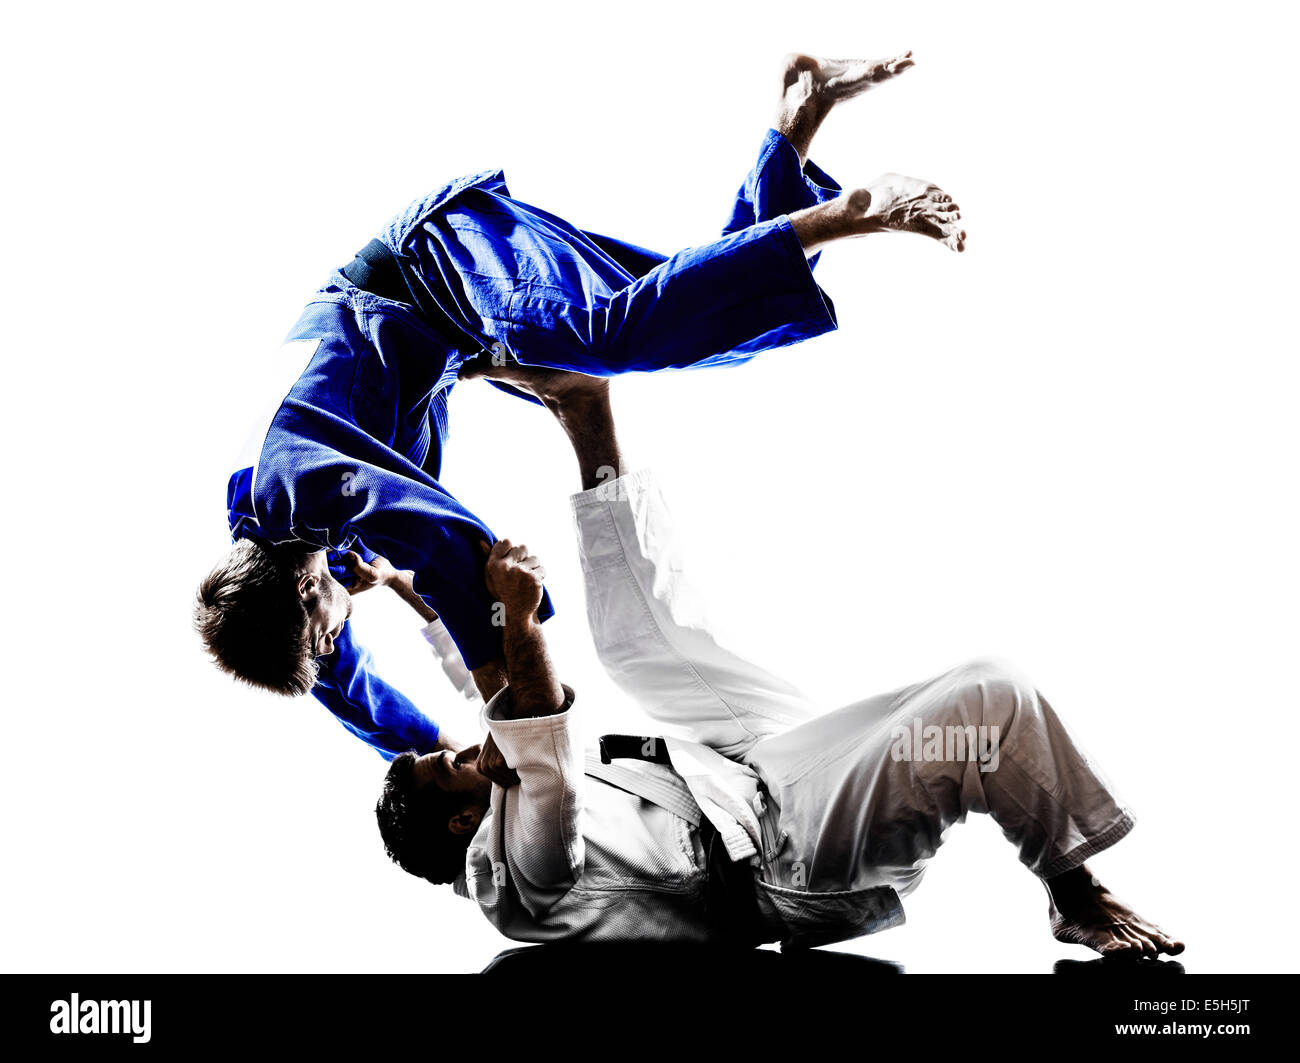 two judokas fighters fighting men in silhouette on white background - Stock Image